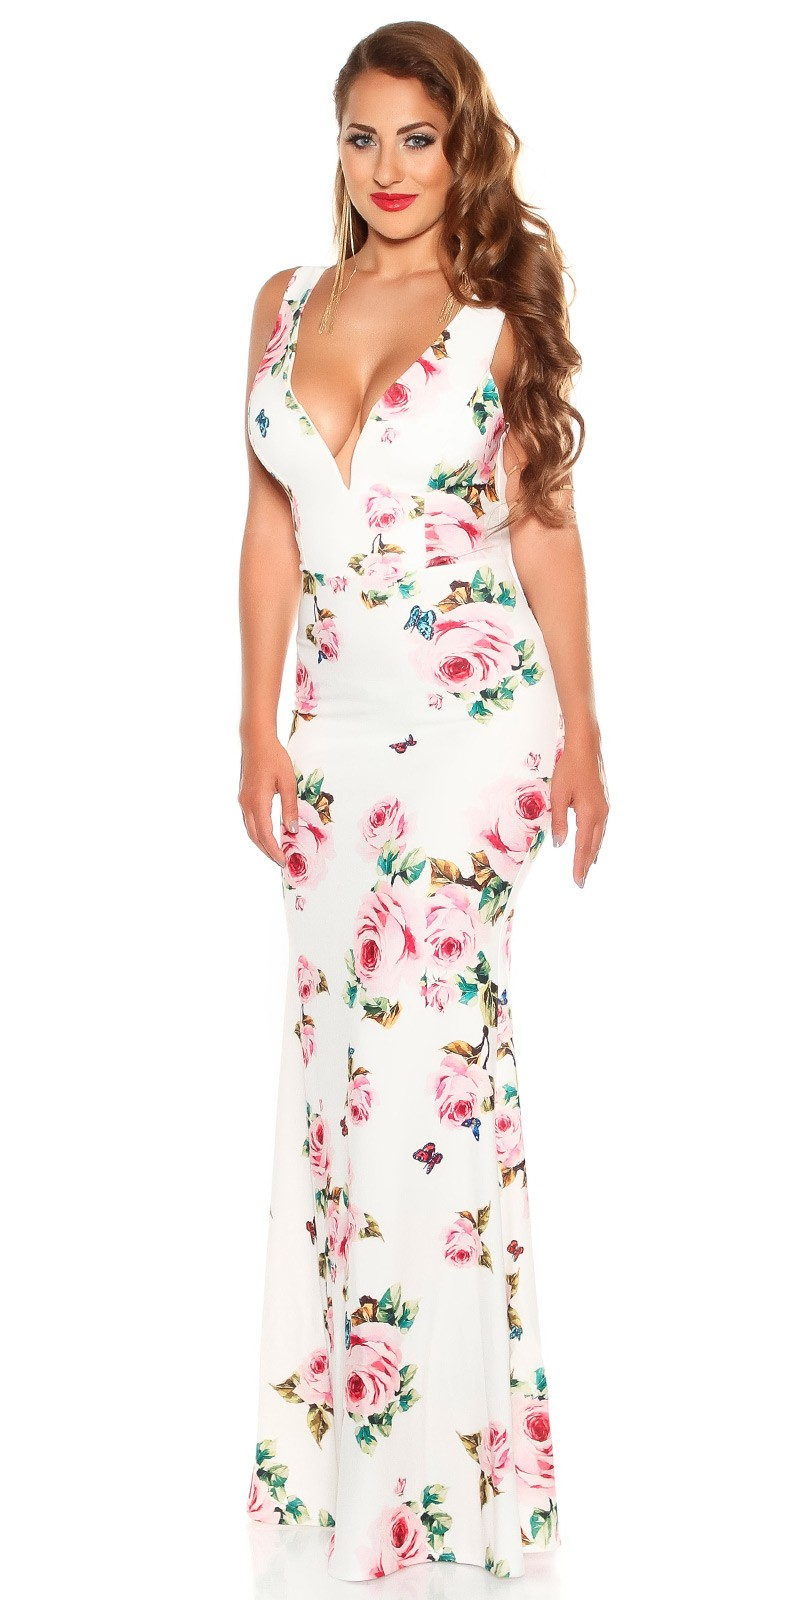 53ecce691687 aaMaxidress with  Flower-Print  Color WHITE Size Einheitsgroesse 0000K2855 WEISS 17